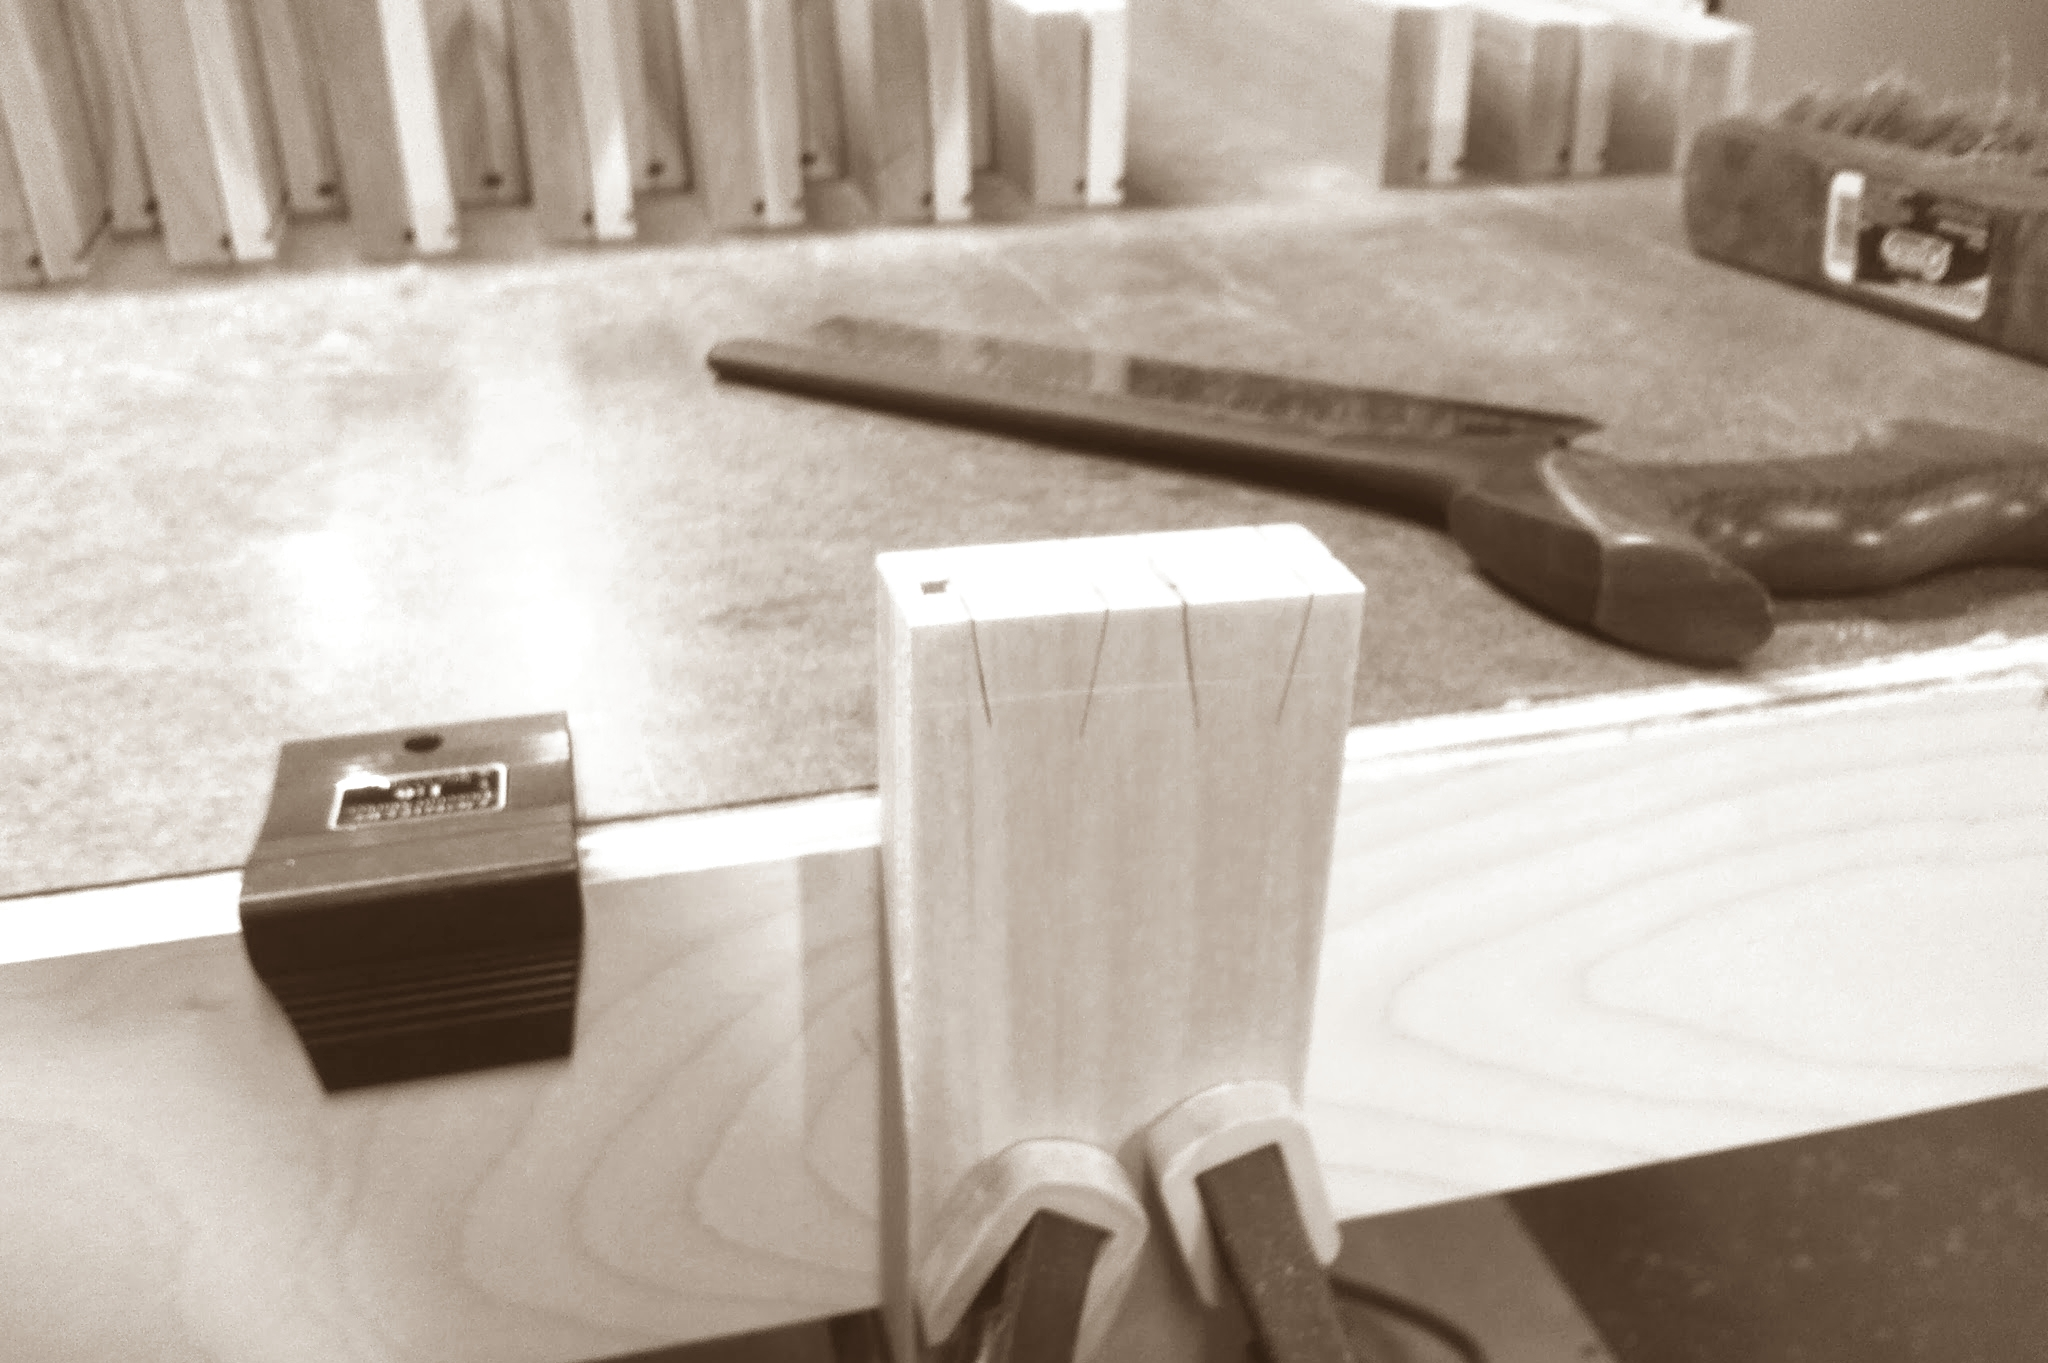 Marking both sides at once using Veritas dovetail gauge